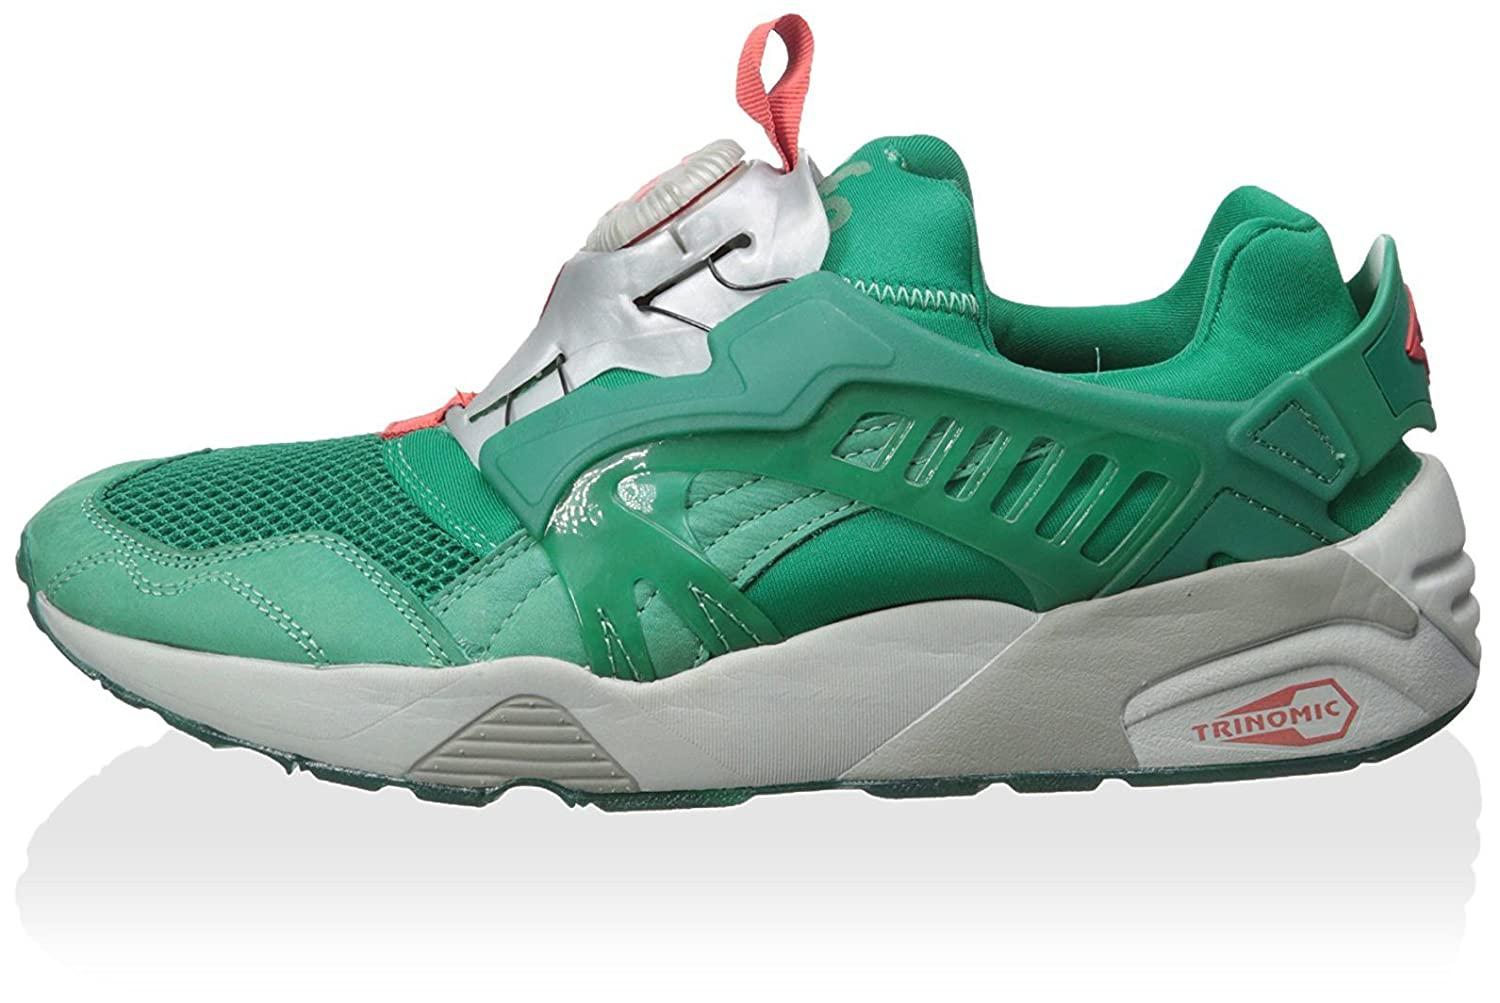 647b2bf69da PUMA Men s Disc X Trinomic X Alife Sneaker